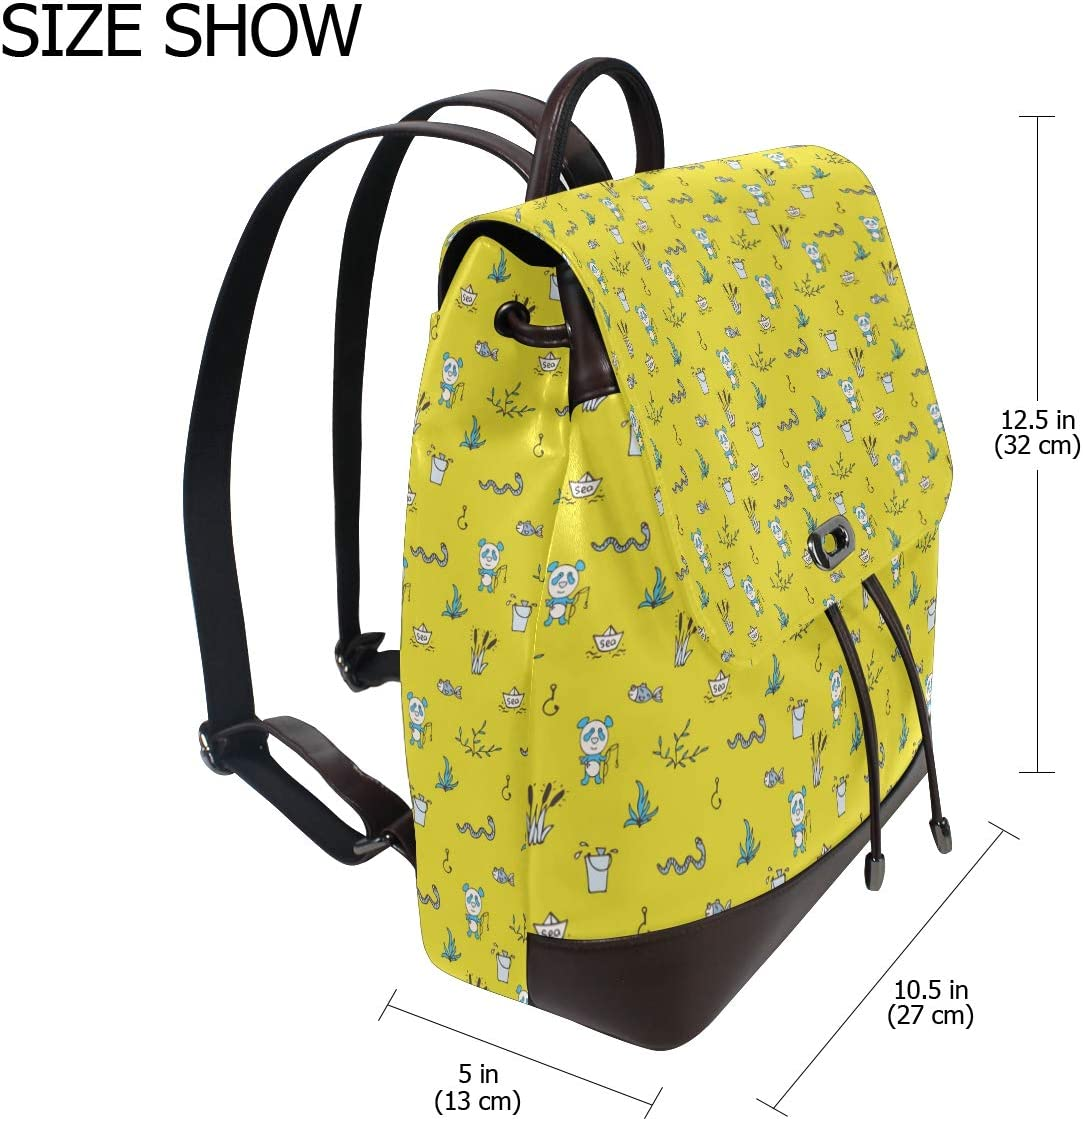 Leather Pandas Fishes Yellow Backpack Daypack Bag Women